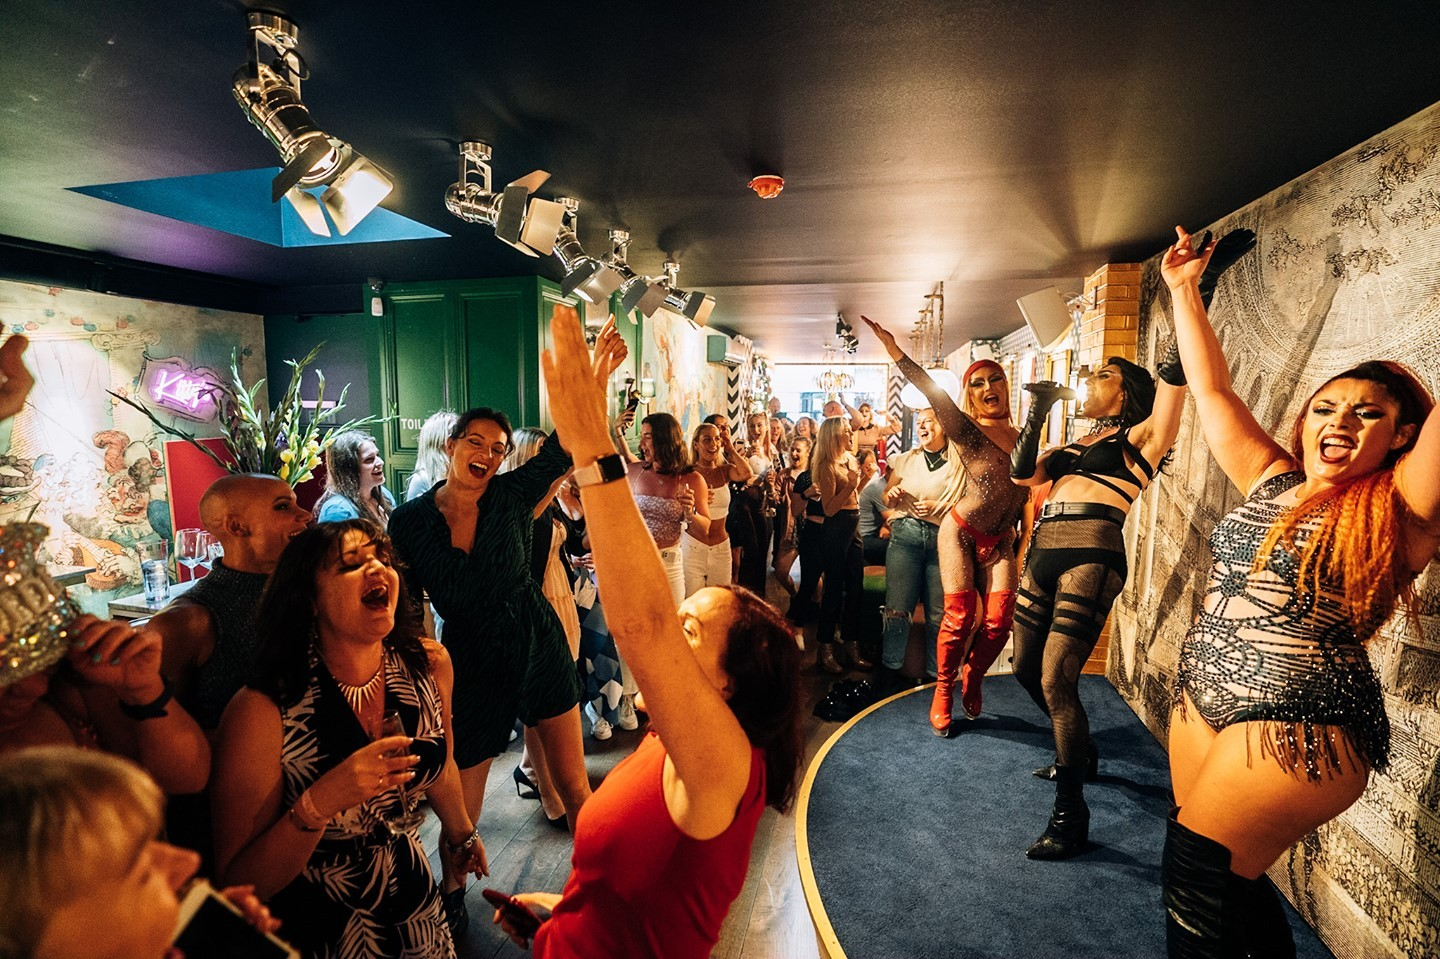 Getting up on your feet at Mrs Riot is a rite of passage!